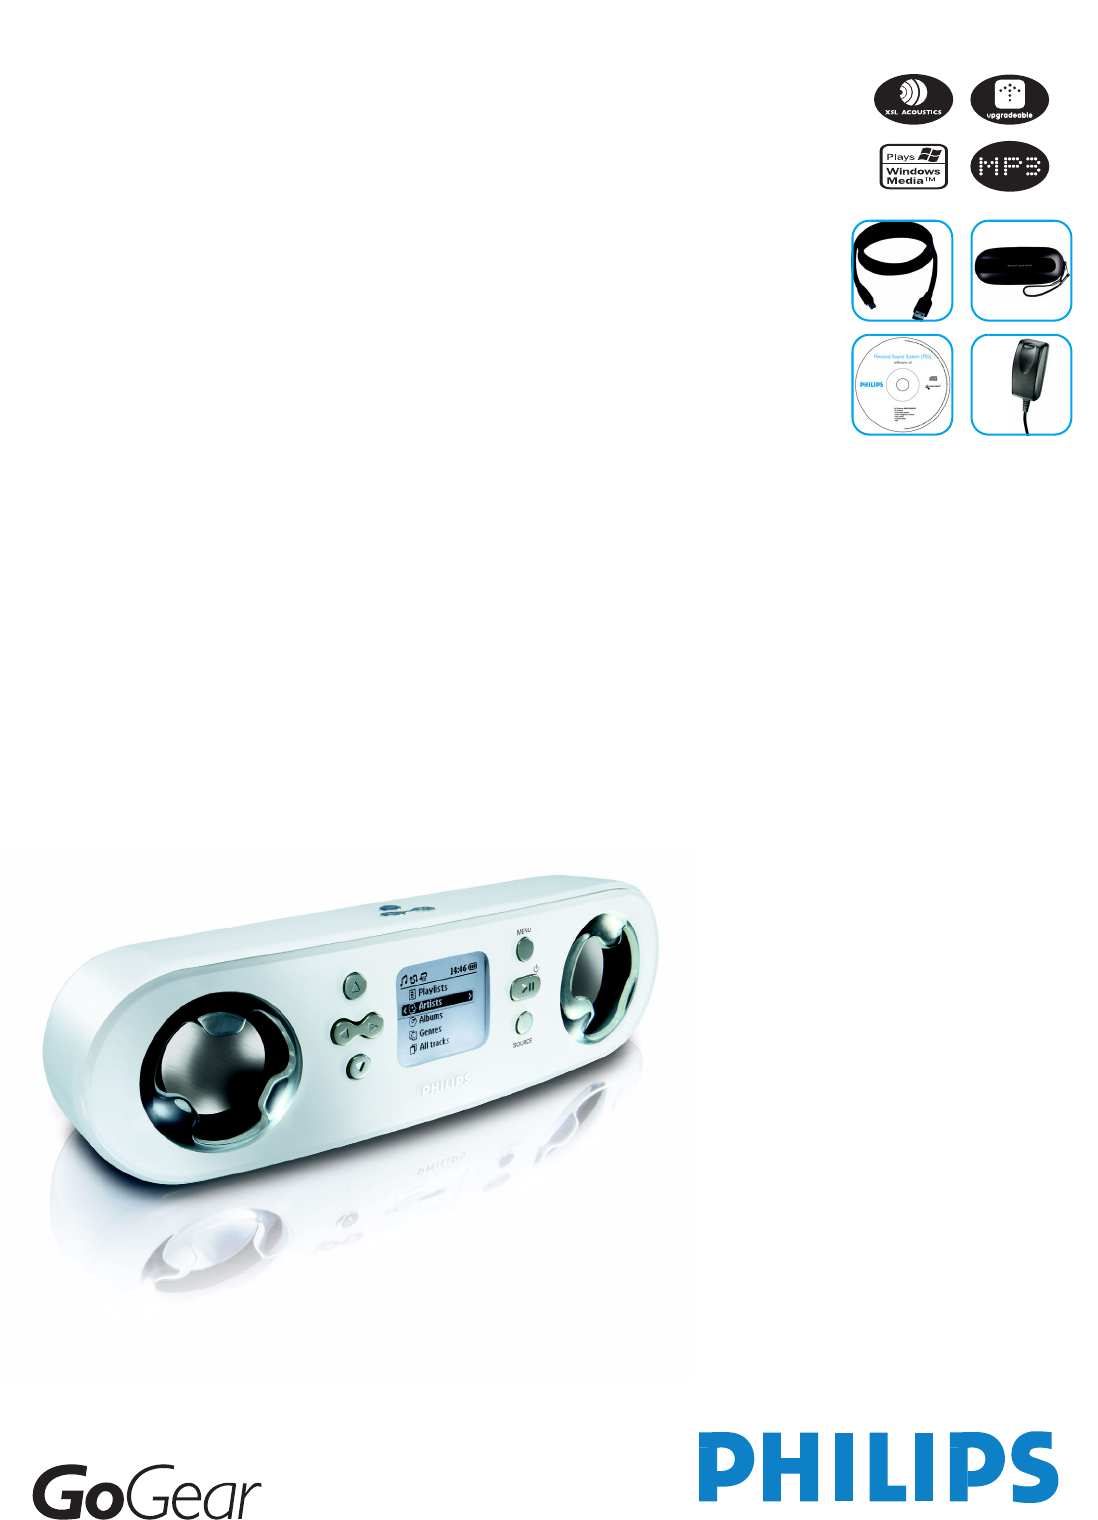 Philips Leaflet Pss110 00 Pss Engsg